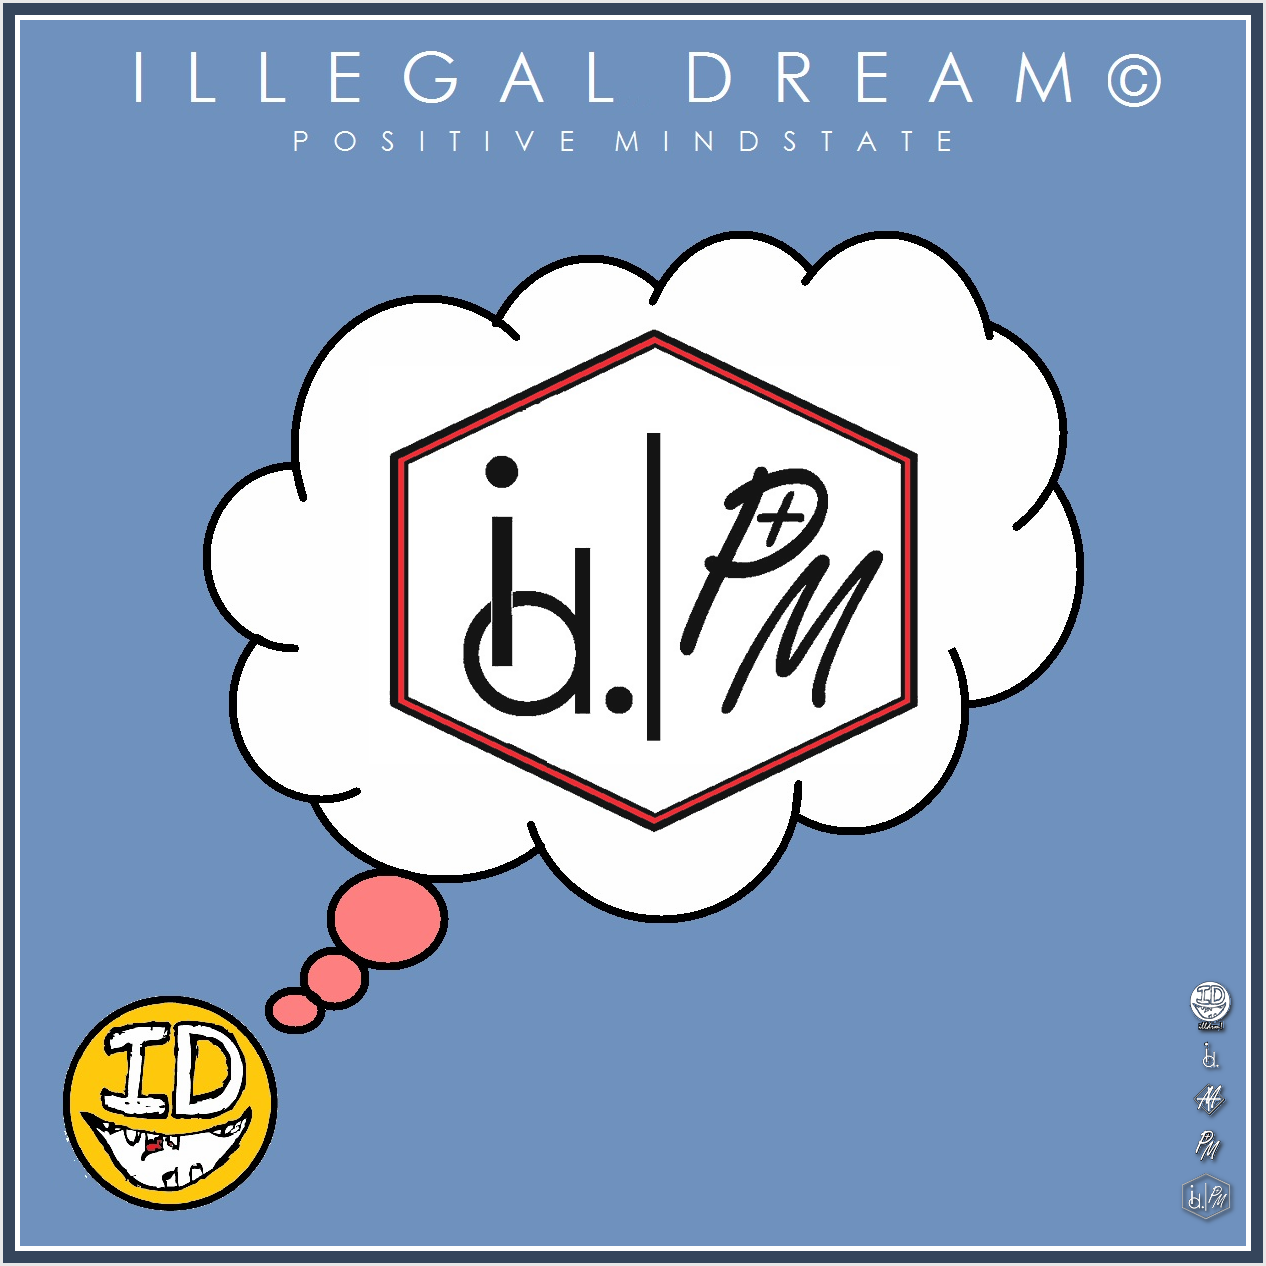 illegaldream:  Another Brand New Concept | Collaboration | ILLEGALDREAM© | POSITIVE MINDSTATE | Support the Revolution | It Will Not Be Television